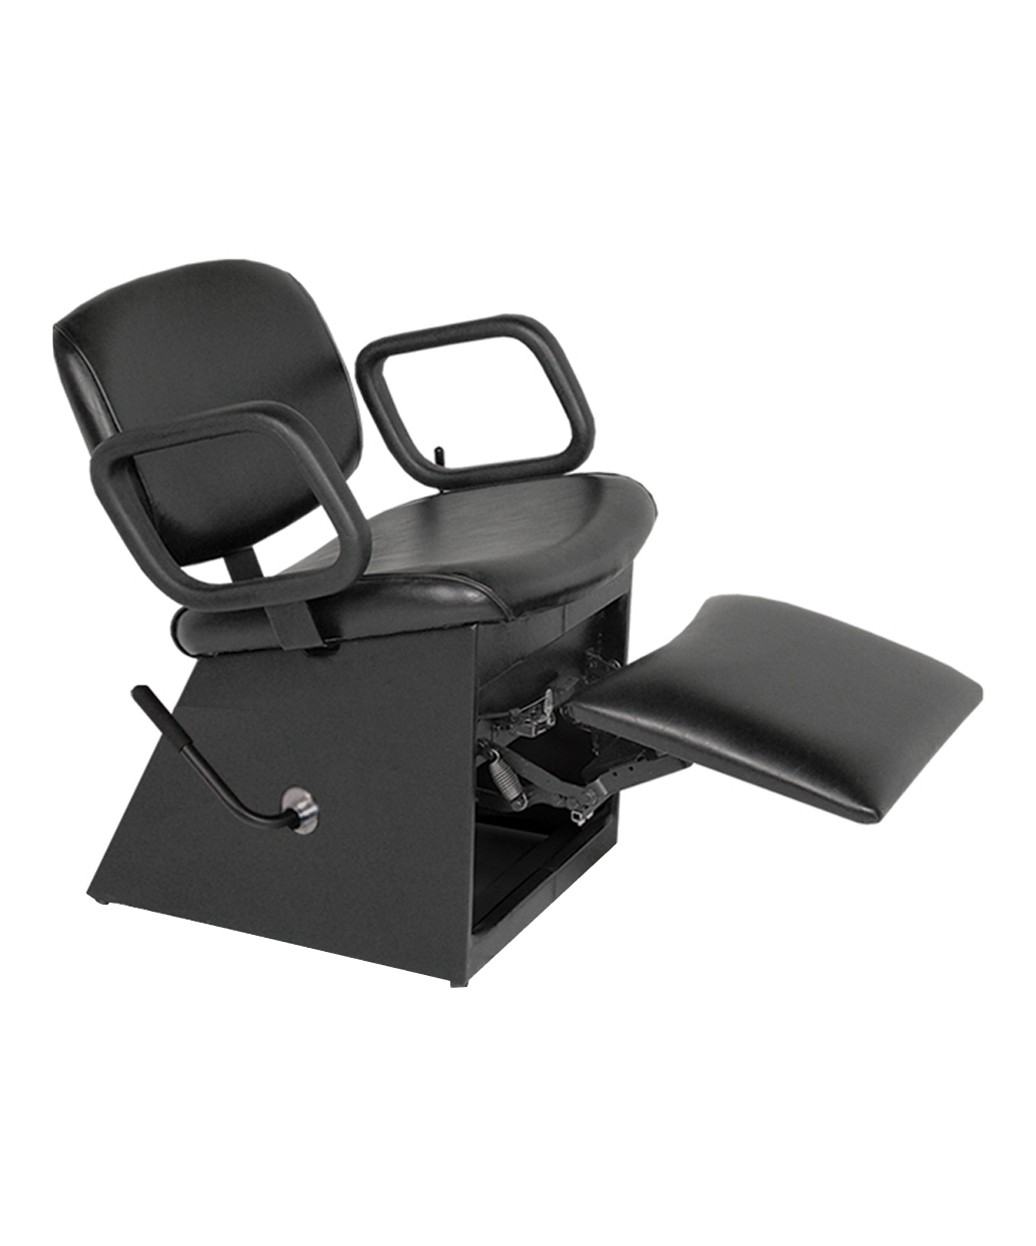 1850L QSE Backwash Chair Kick-Out Leg rest